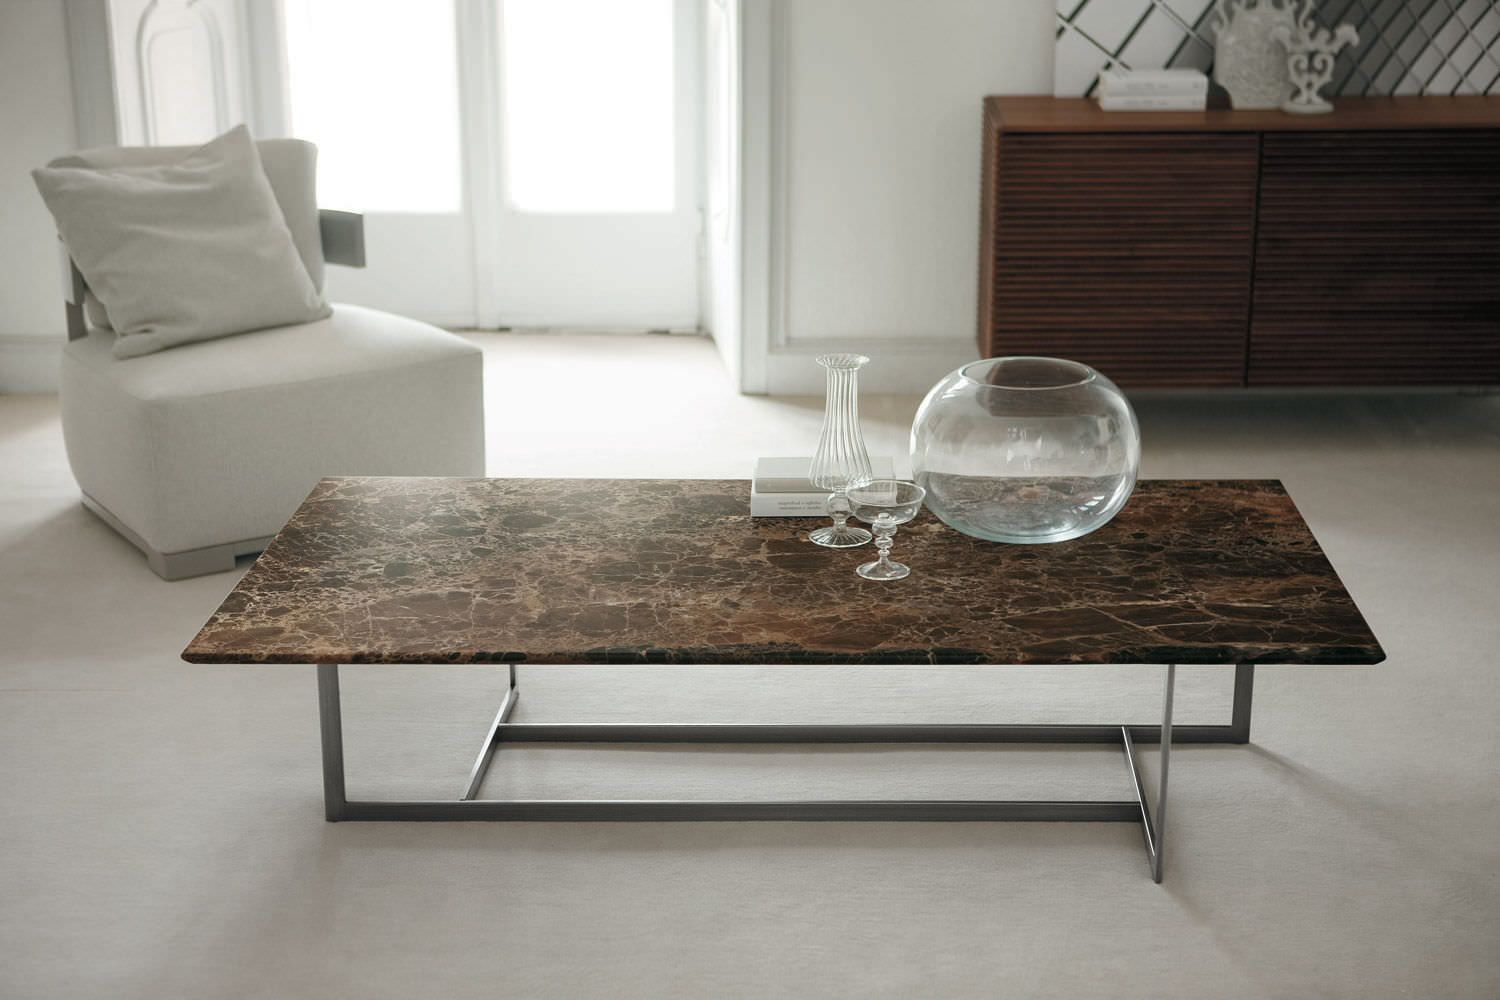 contemporary marble coffee table - londra by opera design - porada, Wohnzimmer dekoo